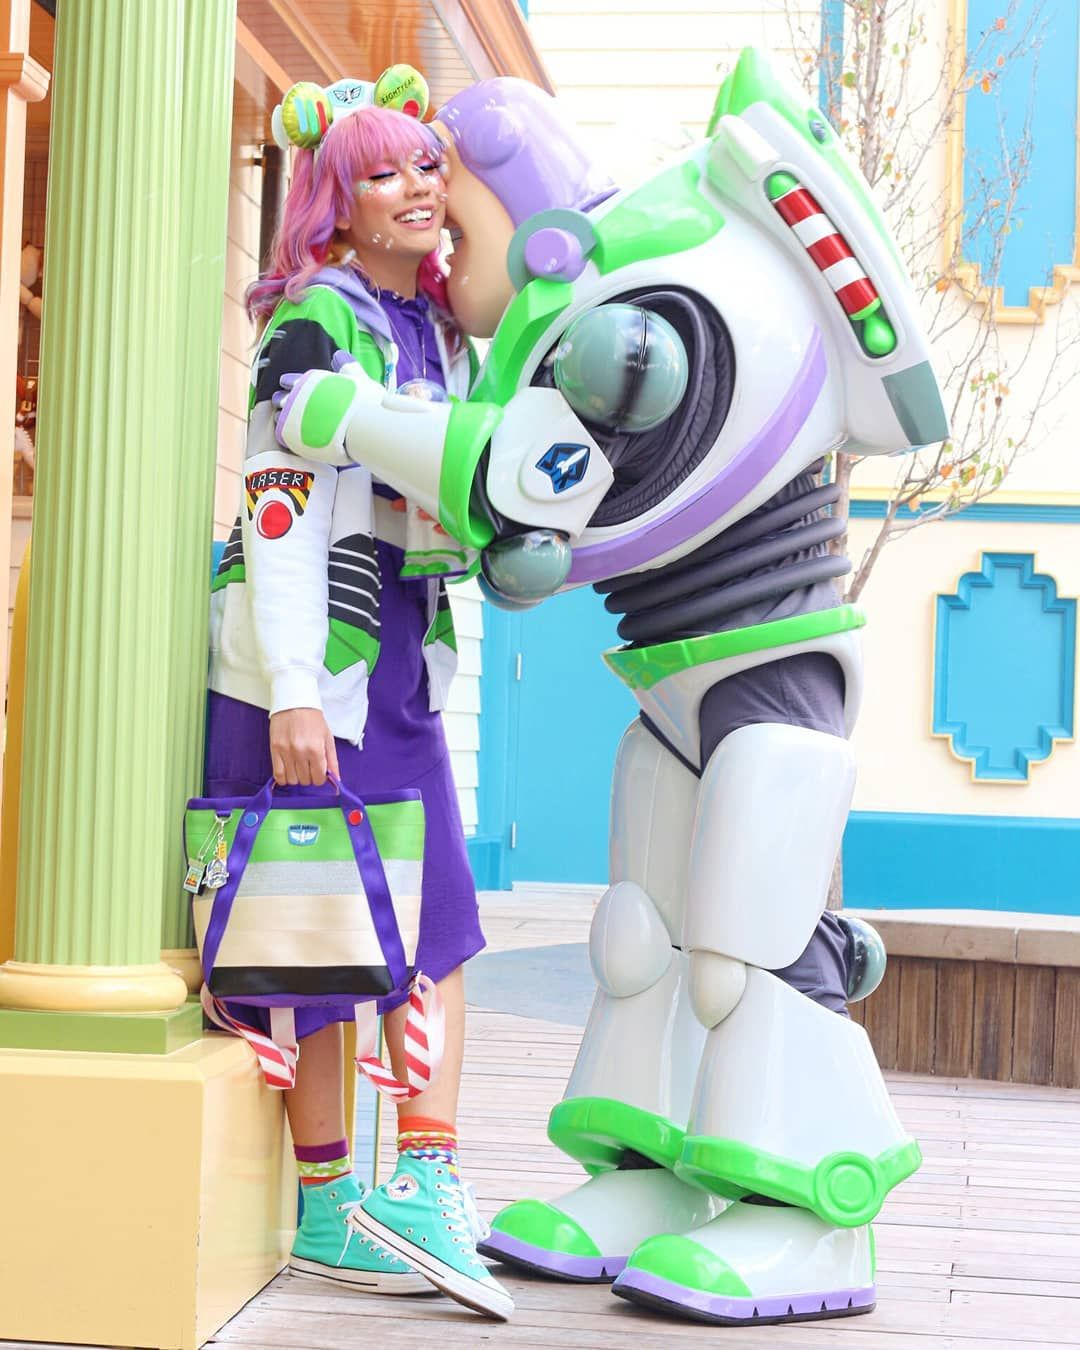 Buzz Lightyear To Star Command Come In Star Command Star Command Come In Do You Read Me This Backpack Will Be Available At Disneybound Disney Pixar Toys